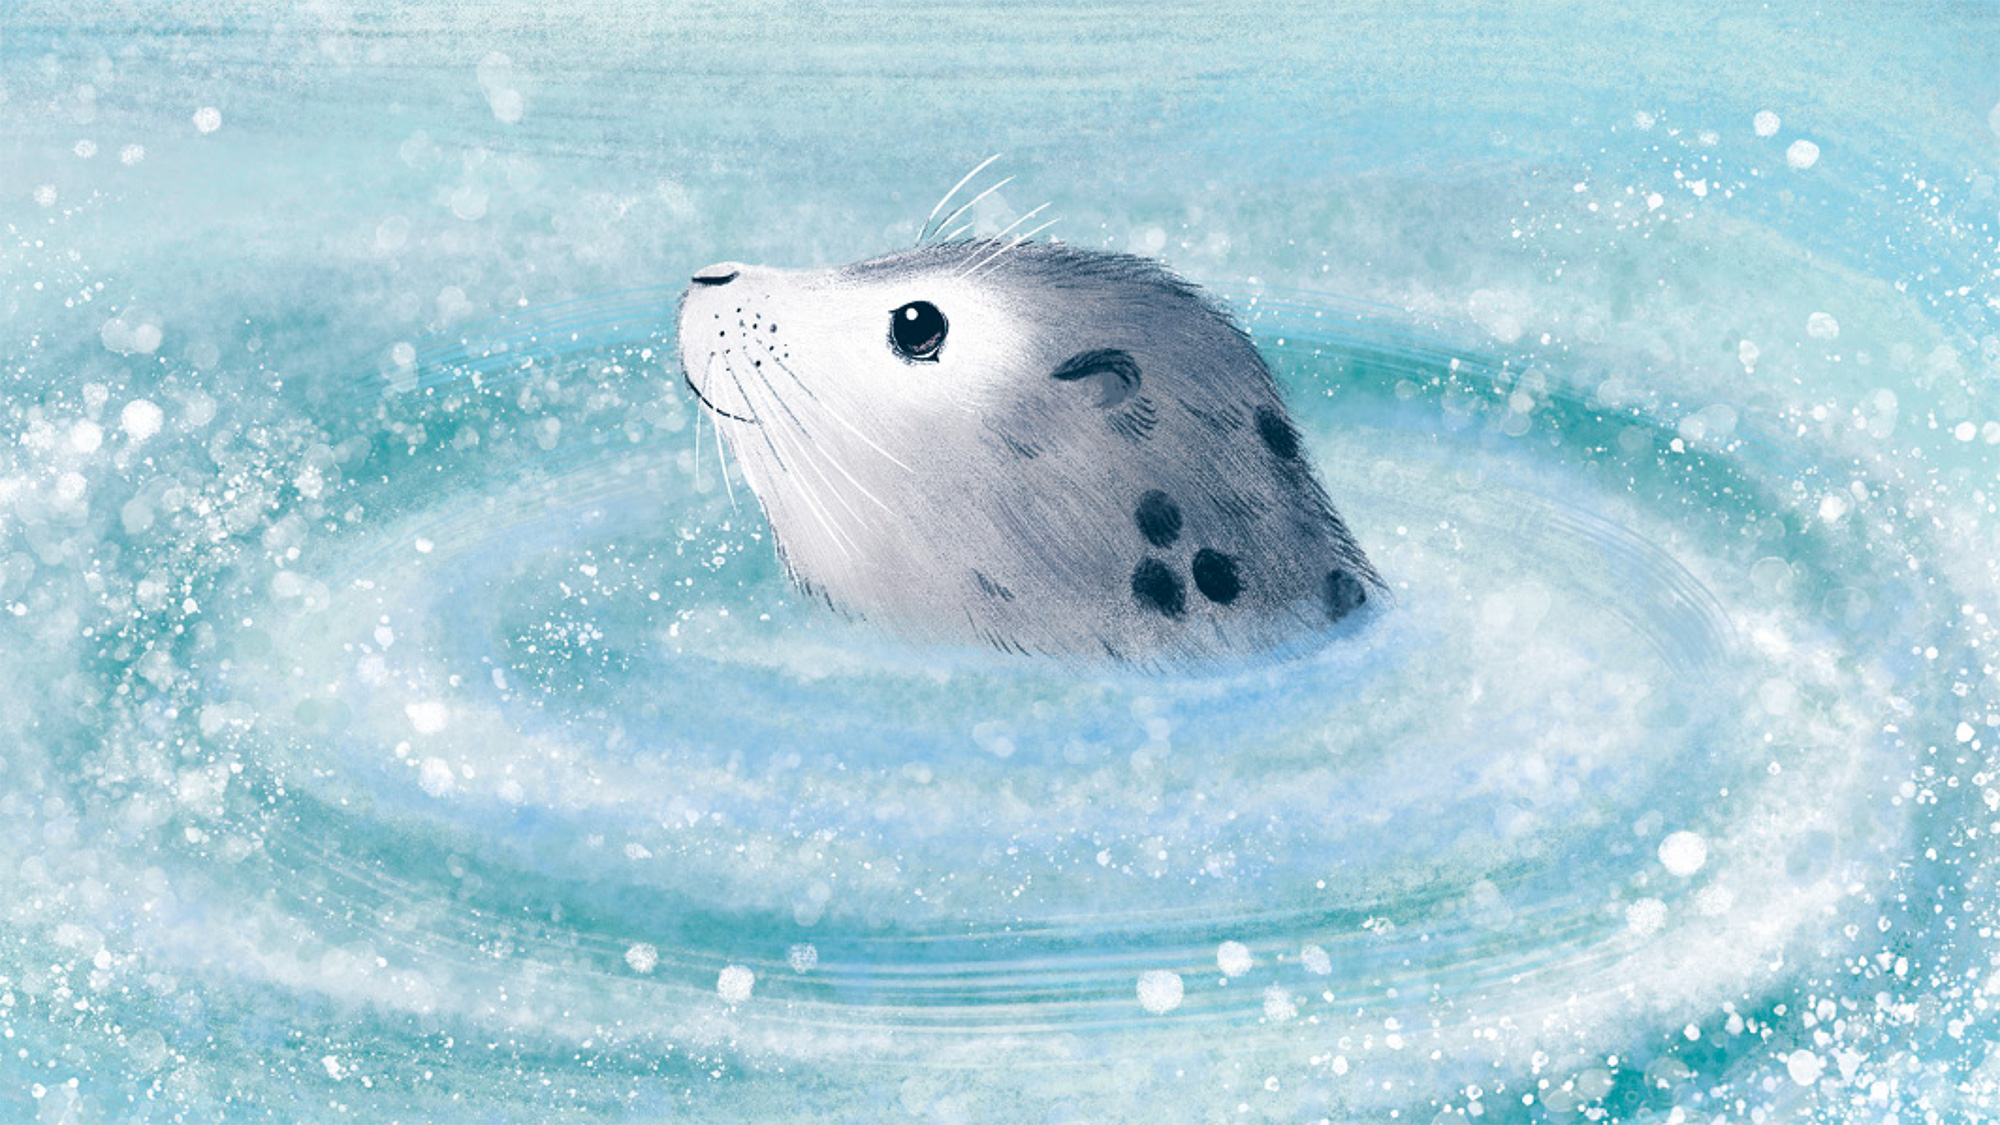 Illustration of a seal bobbing in the waves, taken from The Wide, Wide Sea.